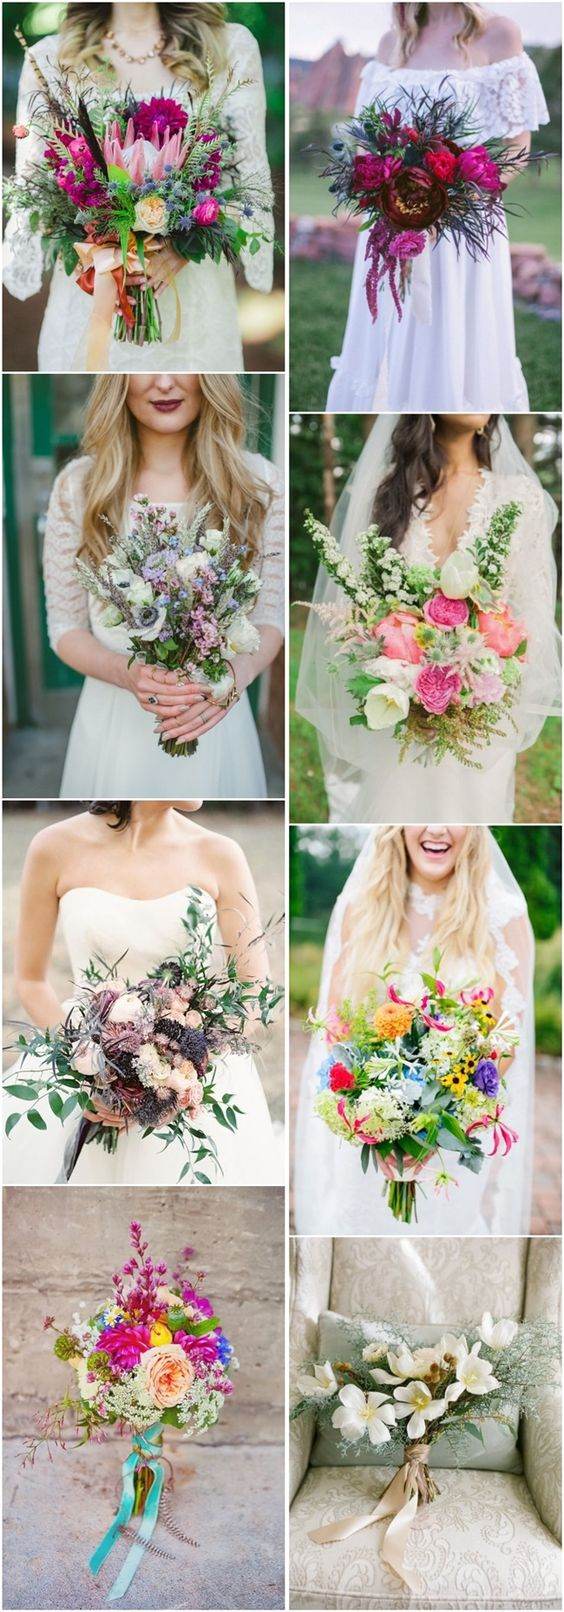 25 Chic Bohemian Wedding Bouquets | http://www.deerpearlflowers.com/25-chic-bohemian-wedding-bouquets/: